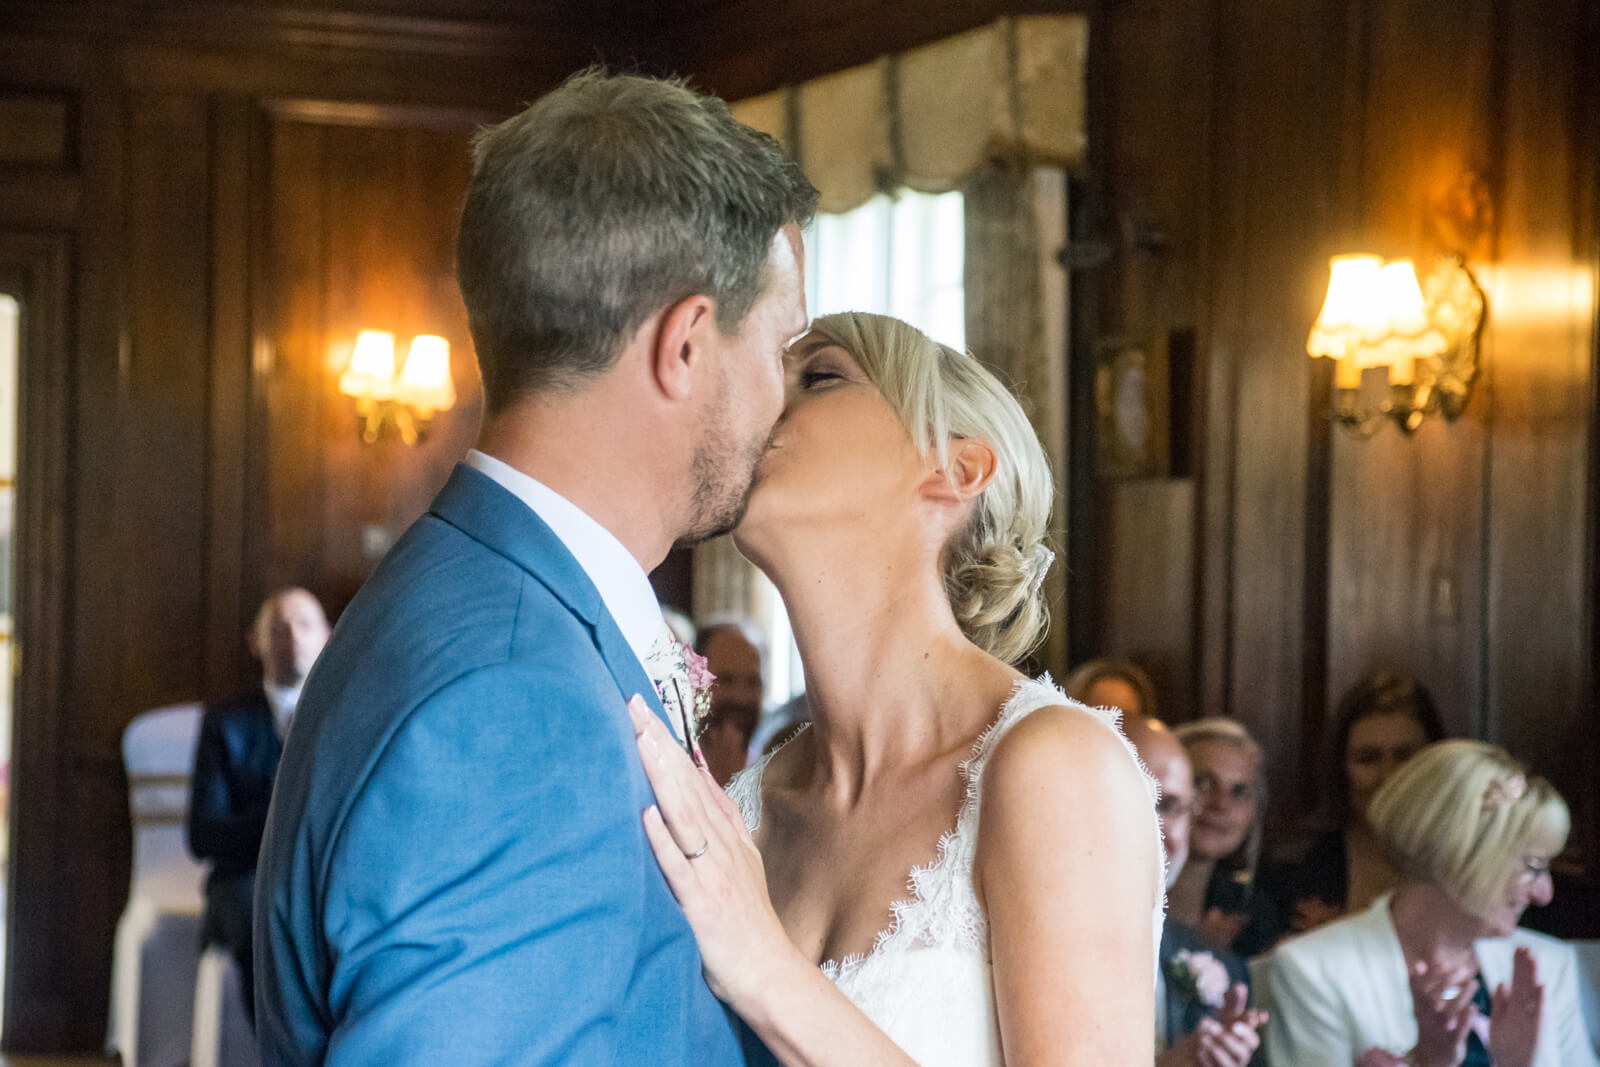 Bride and groom's first kiss as a married couple